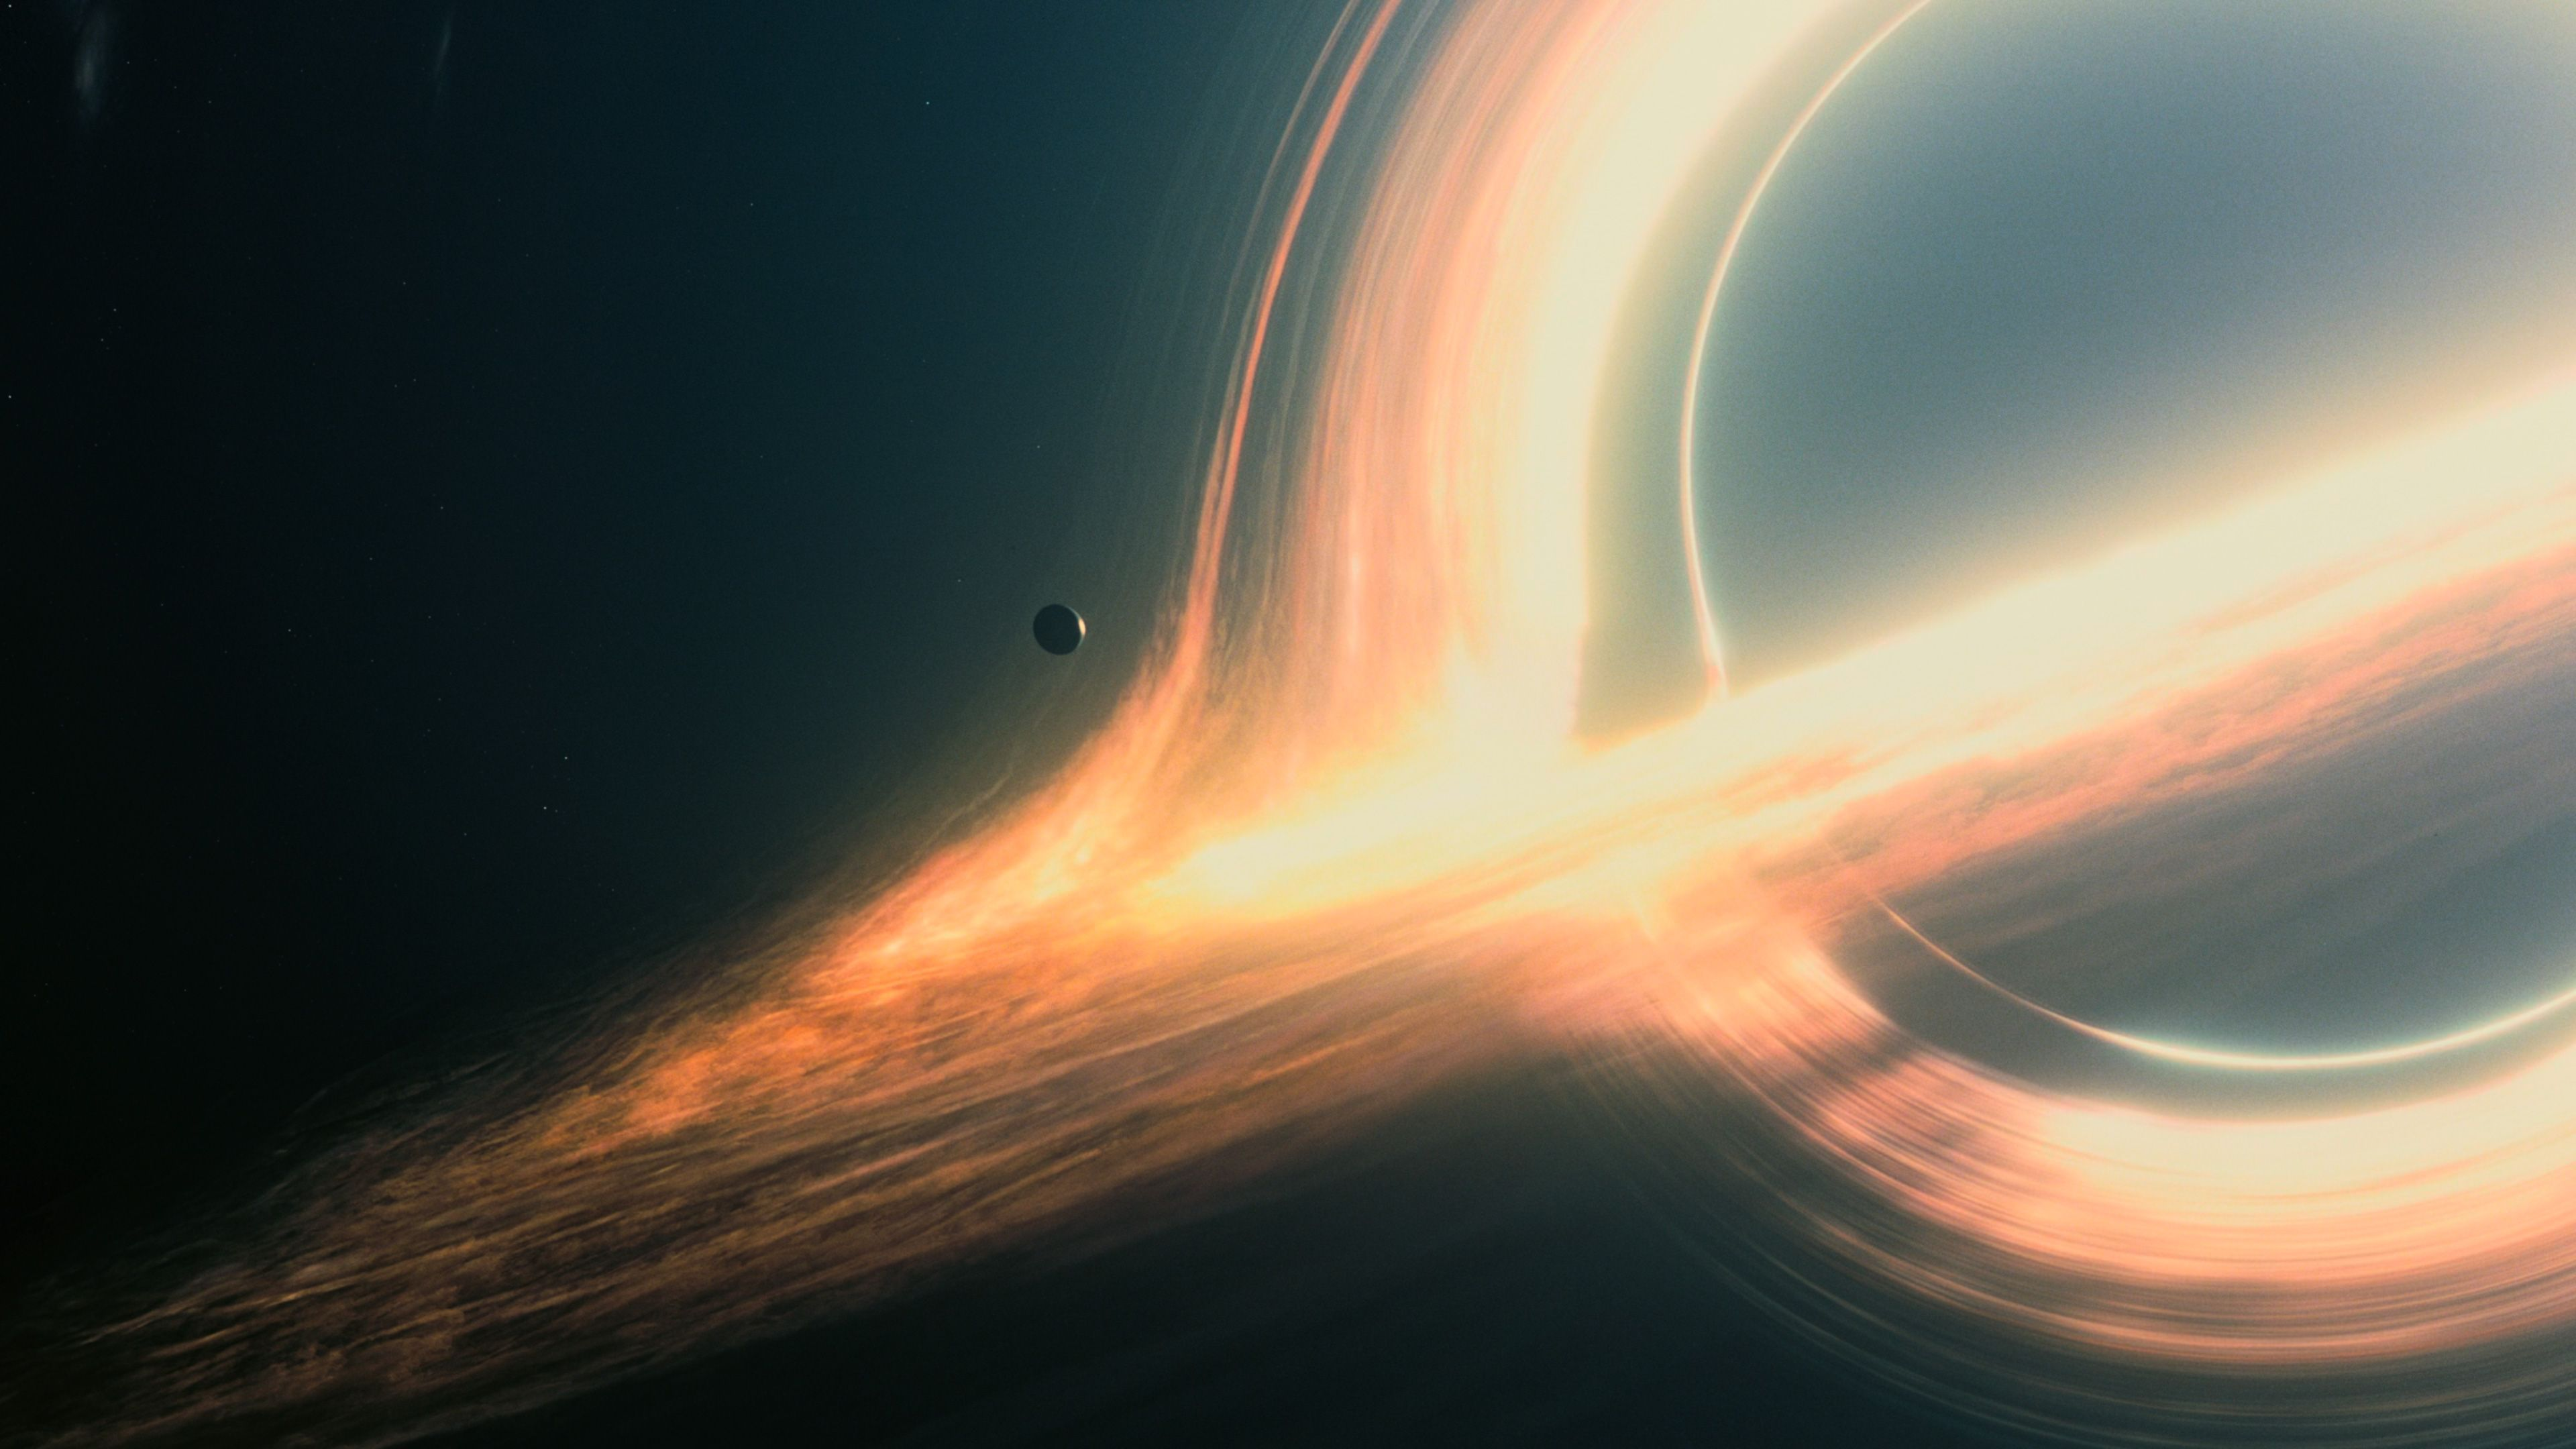 Interstellar Gargantua 4k space wallpapers, hdwallpapers